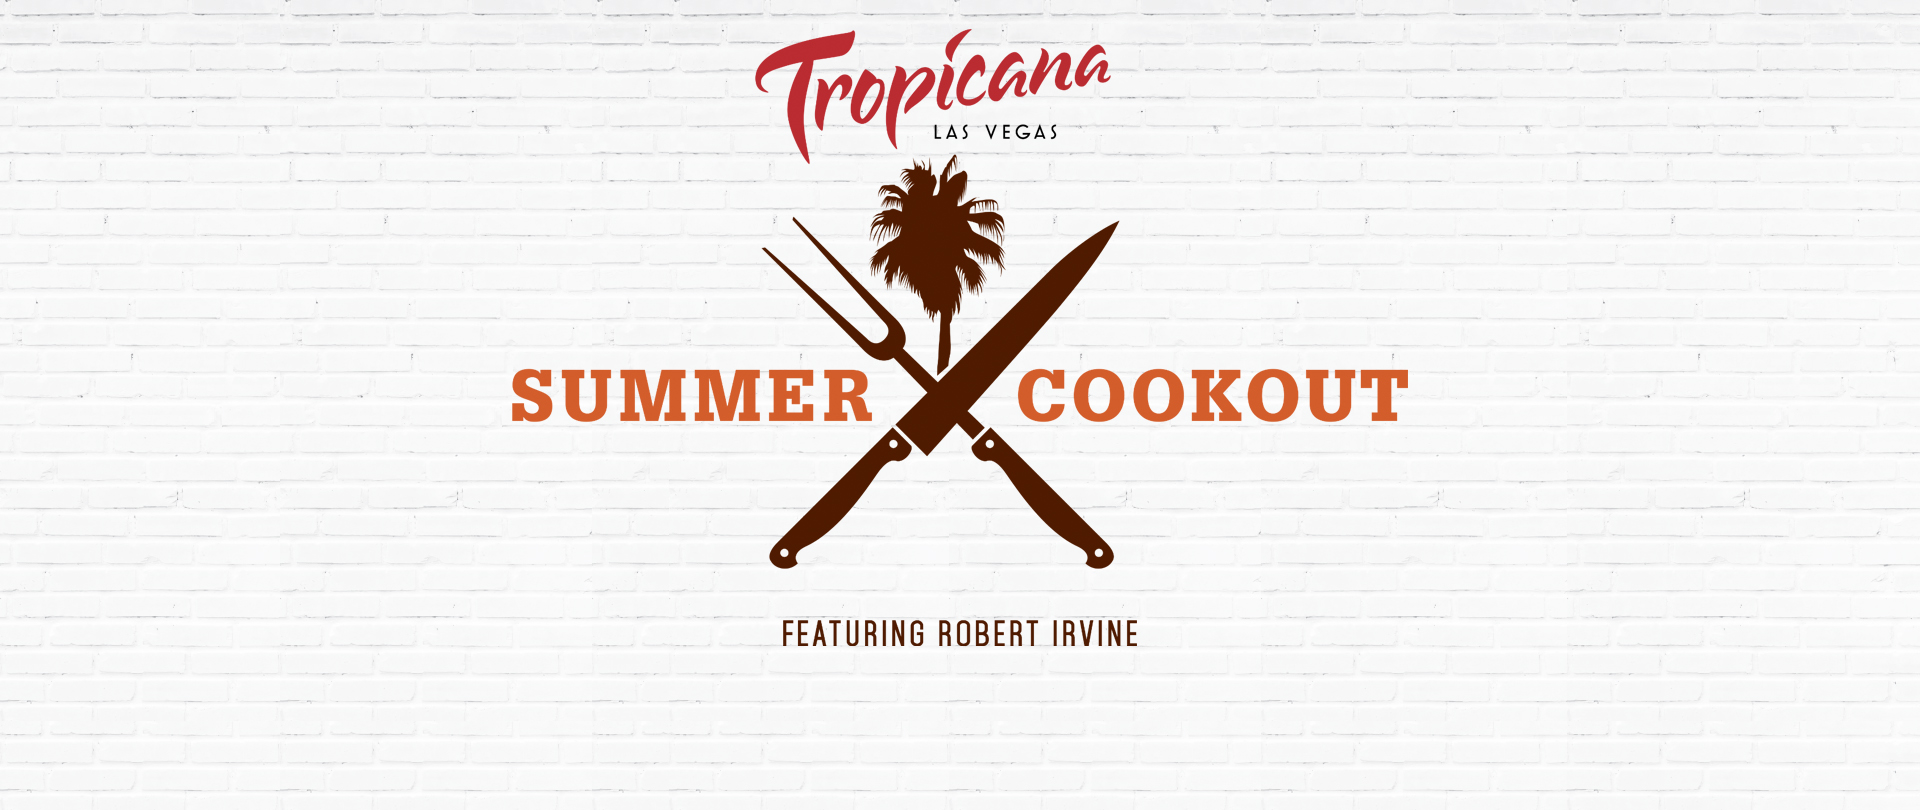 Image result for Summer Cookout featuring Robert Irvine las vegas